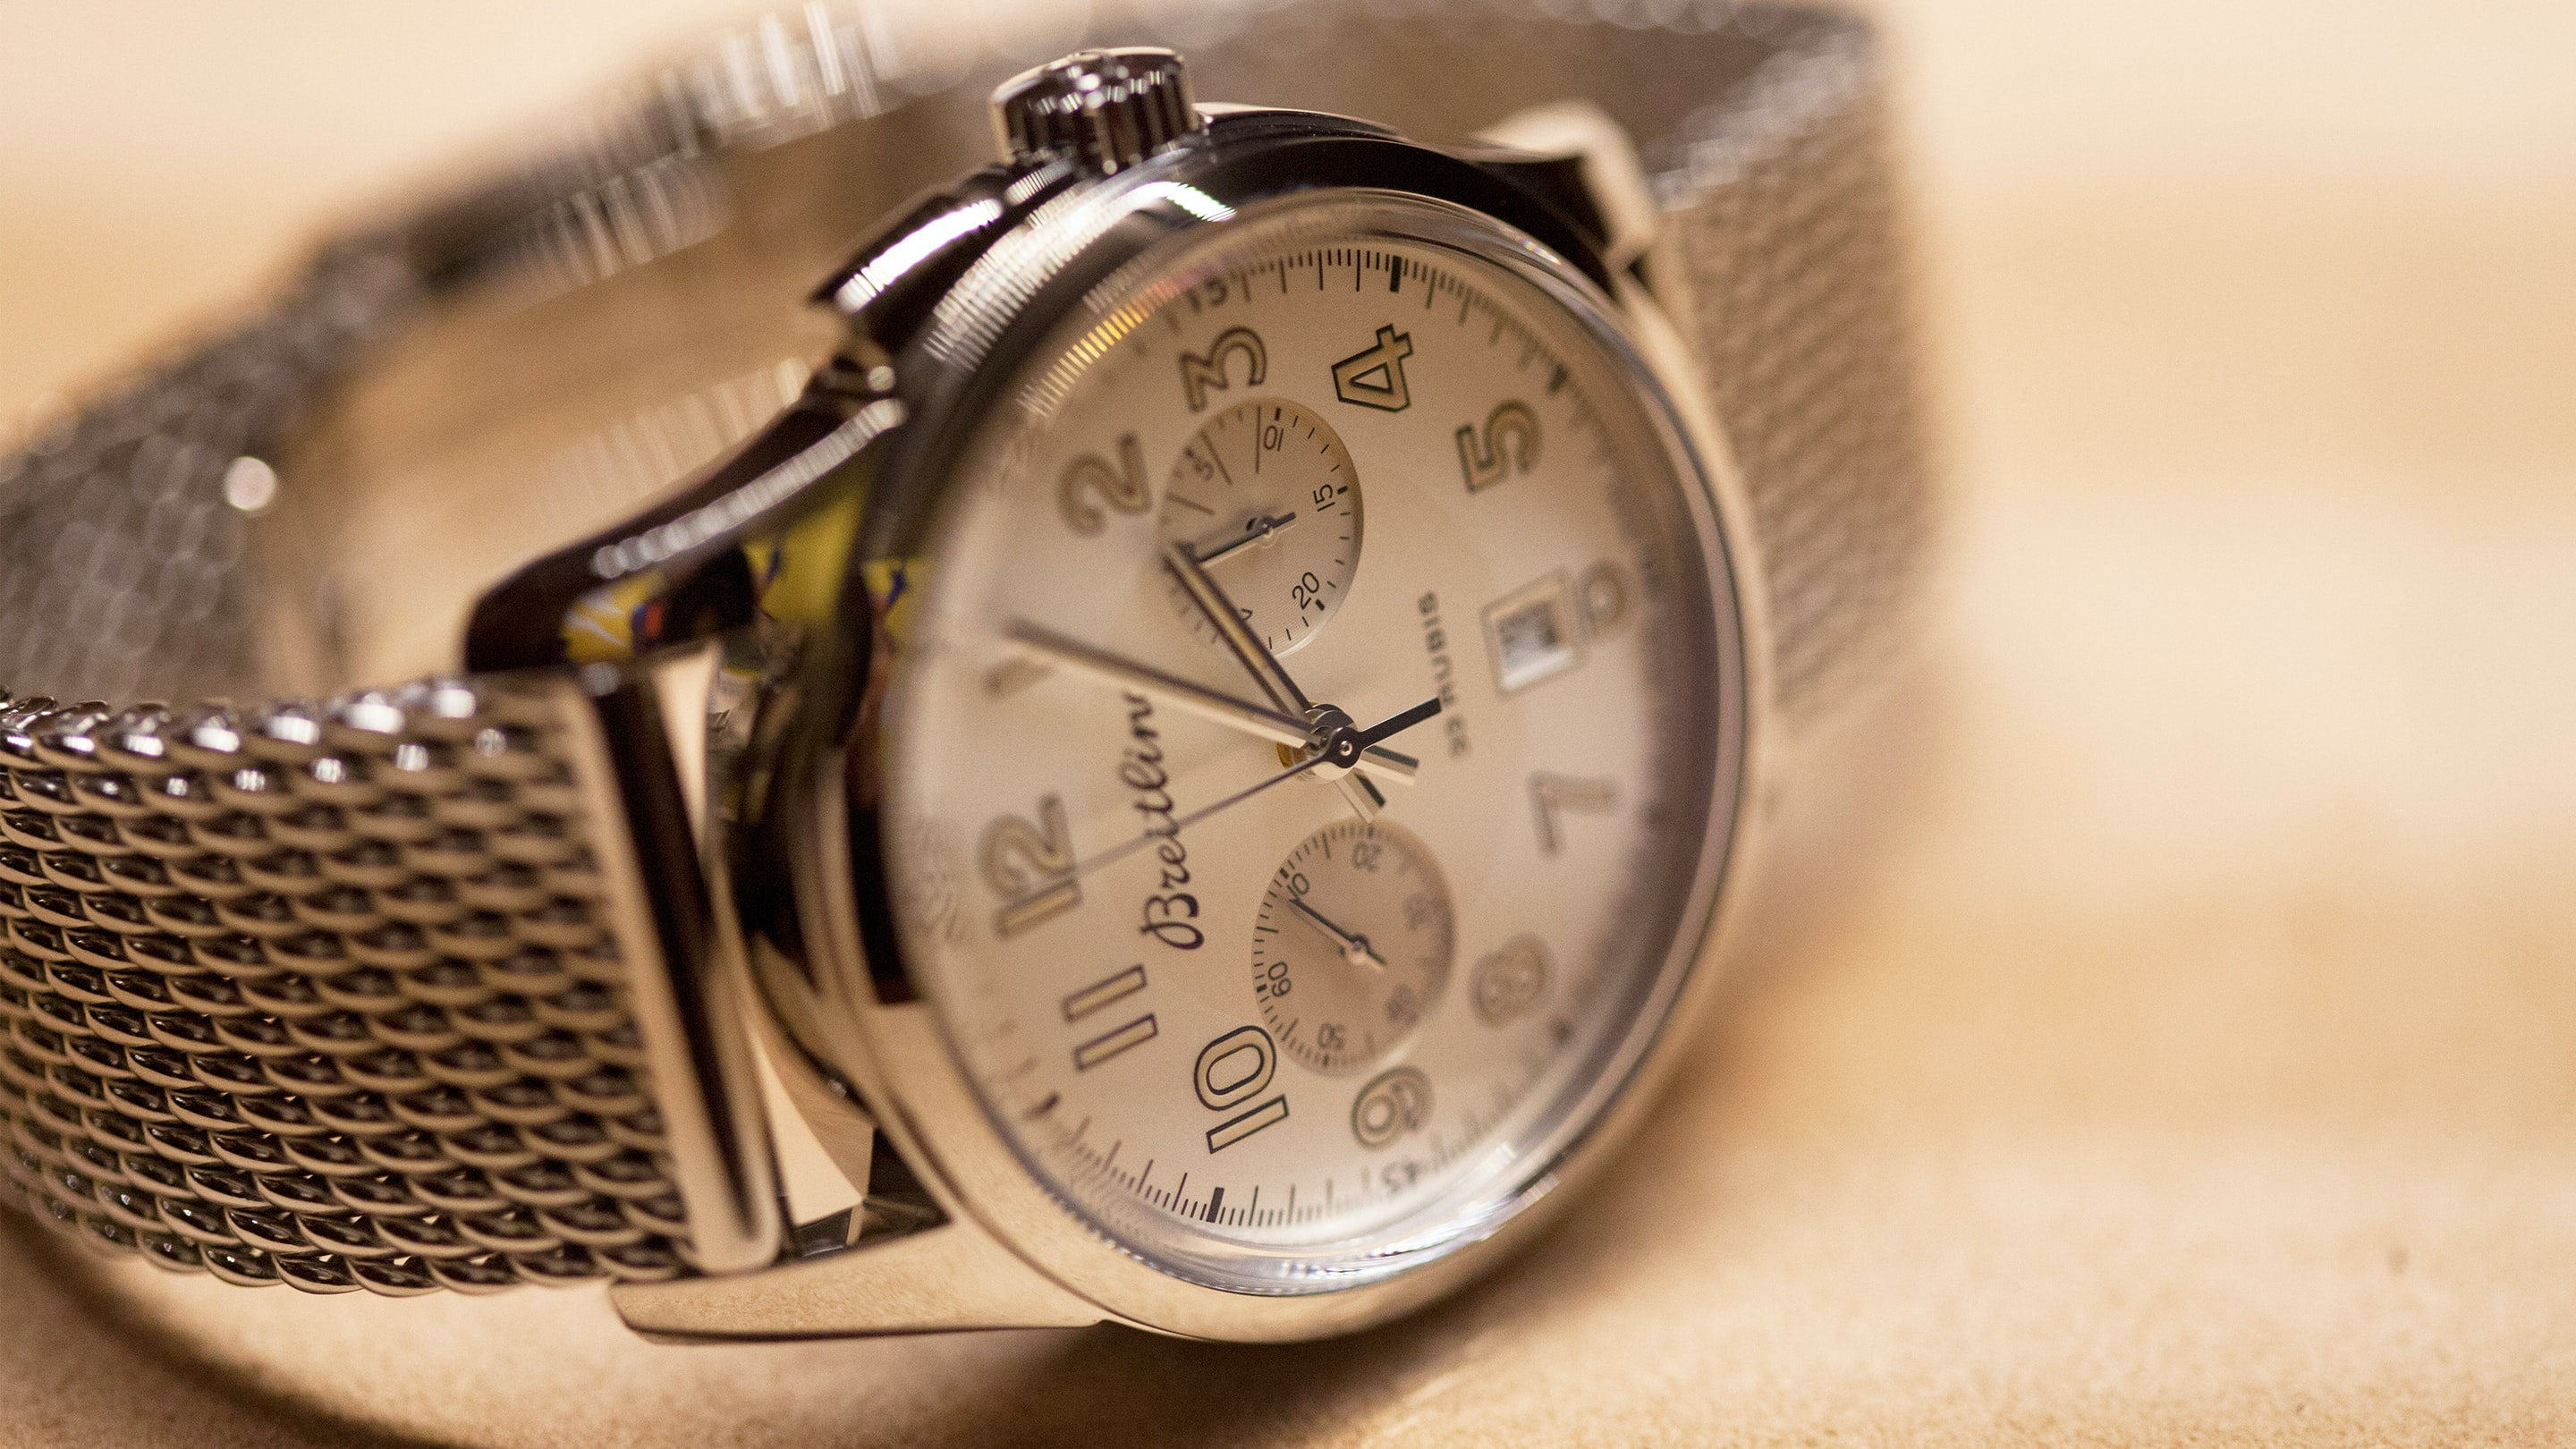 Hands-On: The Breitling Transocean Chronograph 1915 Monopusher